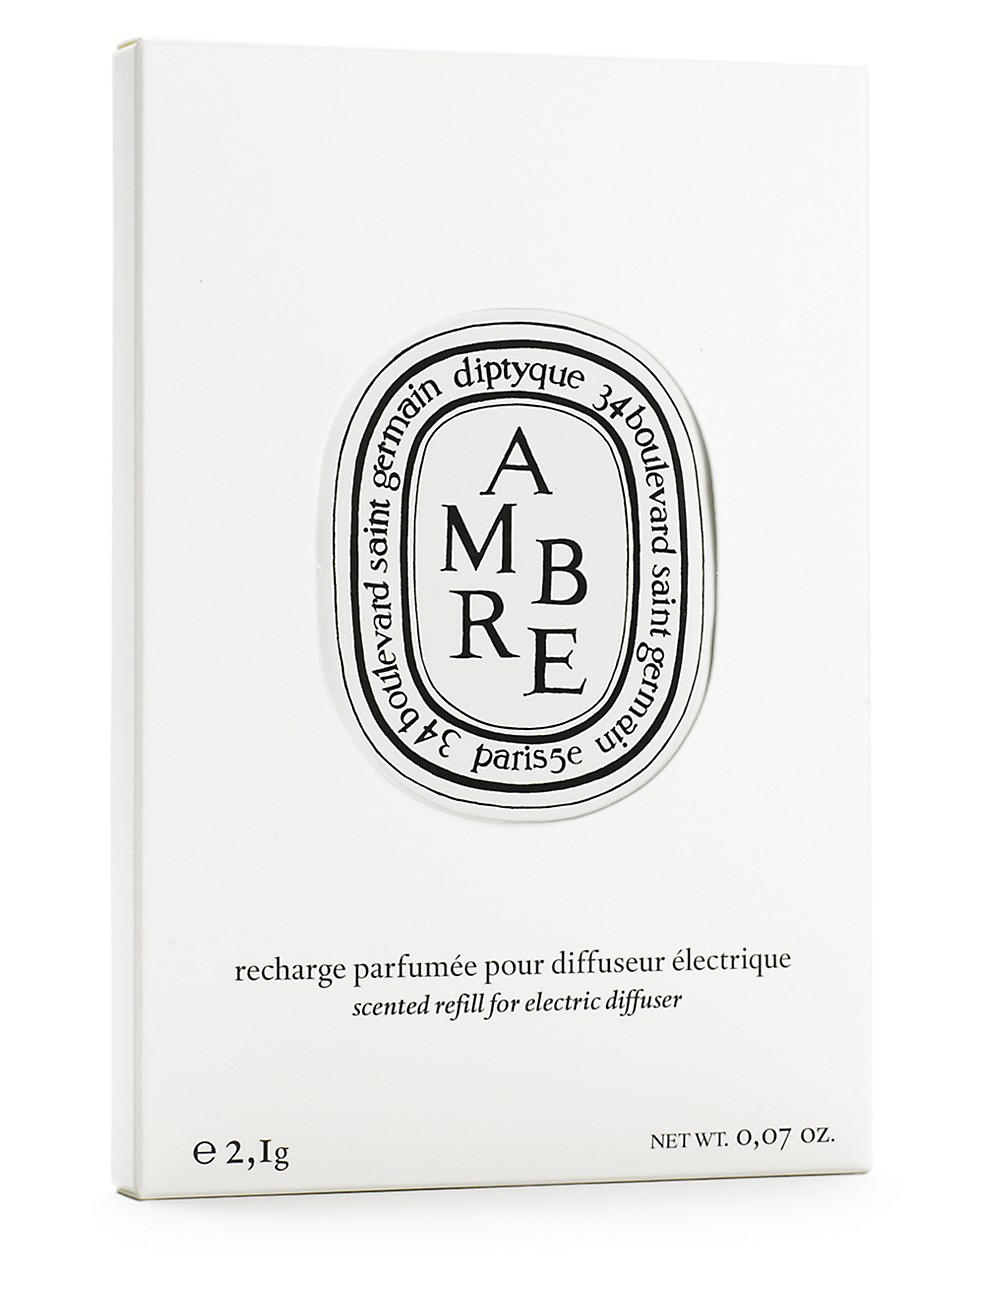 Diptyque Amber Electric Diffuser Refill